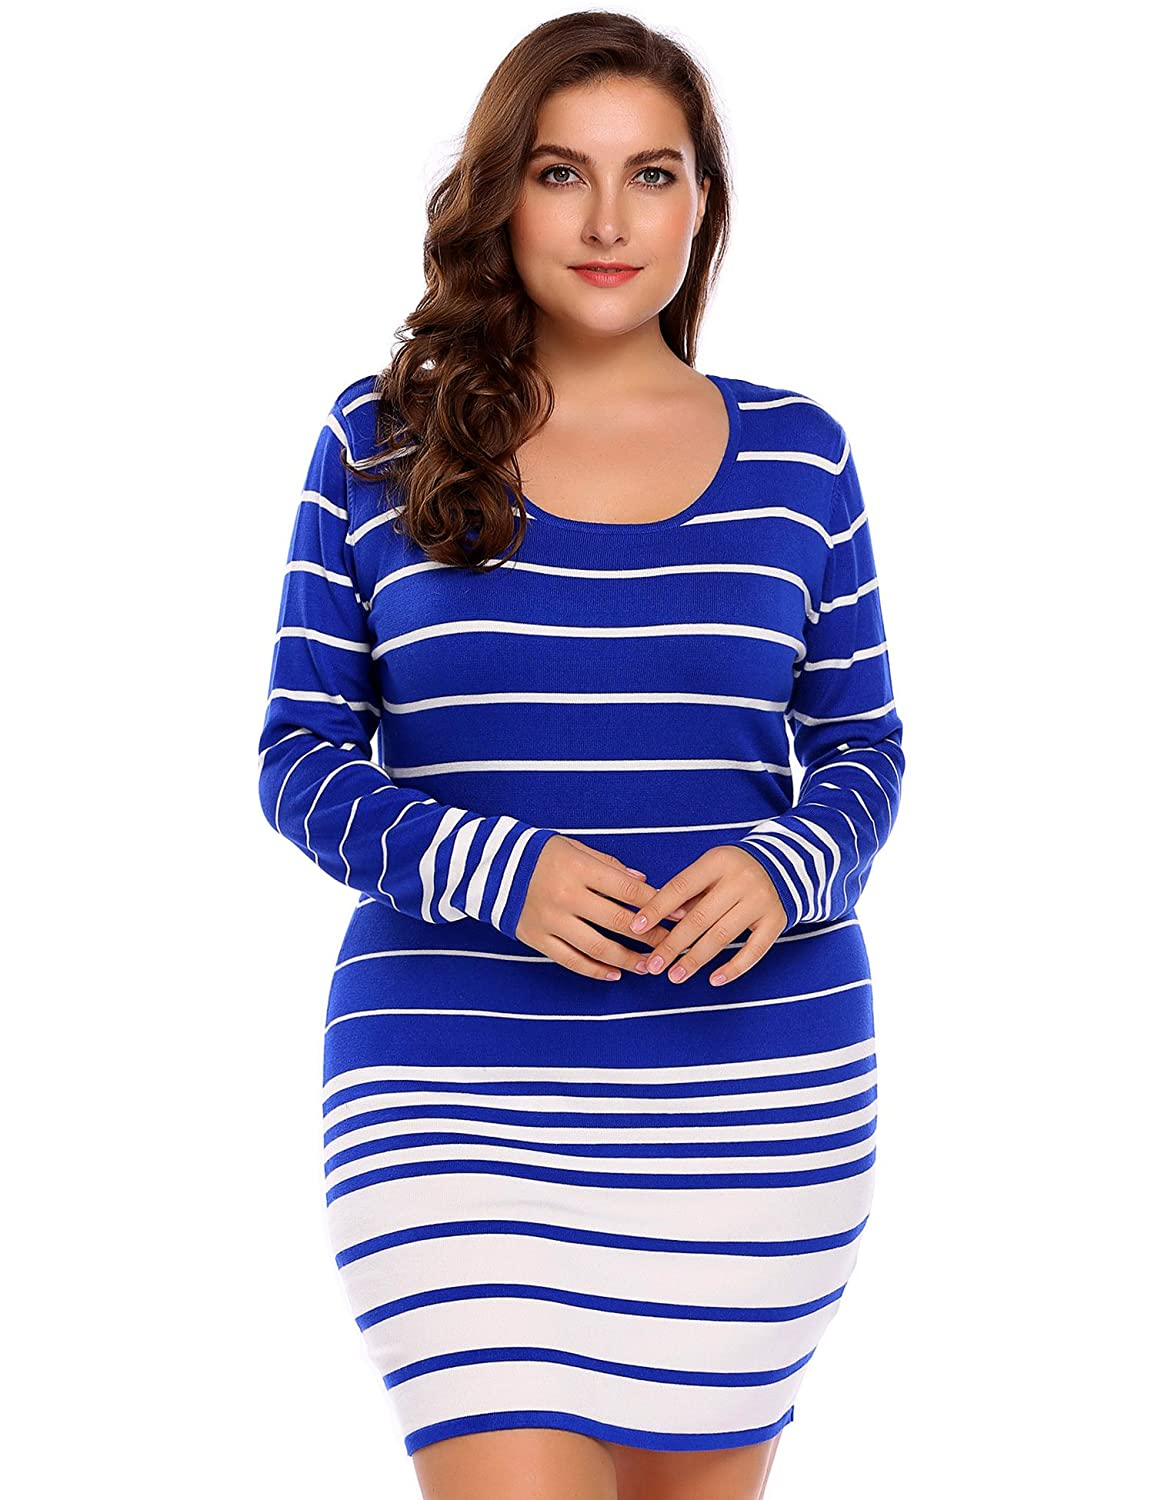 1a4adfa650 IN VOLAND Plus Size Women s Round Neck Striped Sweater Dress Slim Fit Knitted  Pullover at Amazon Women s Clothing store